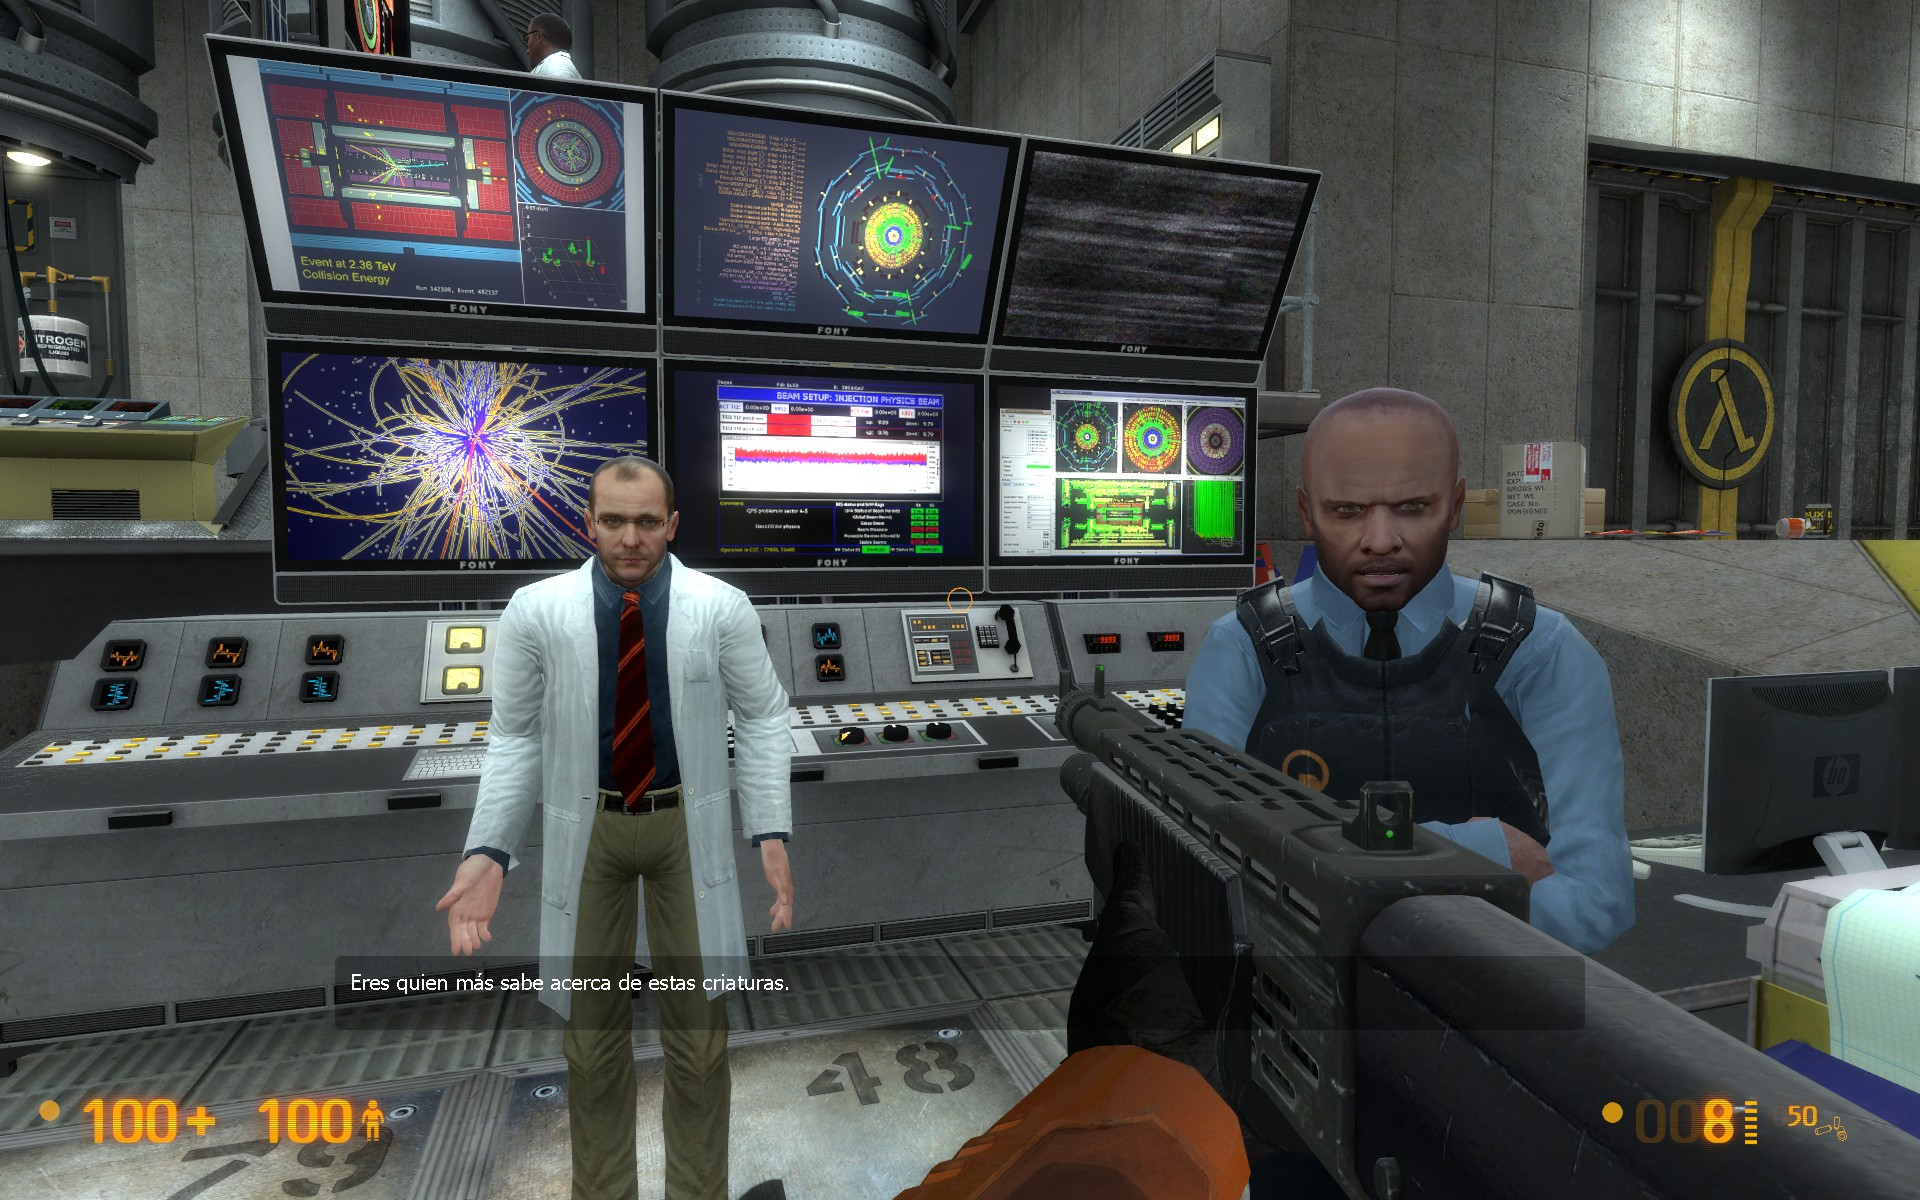 La Demo de Half Life, Uplink, recreada en un mod para Black Mesa Source [Modception]